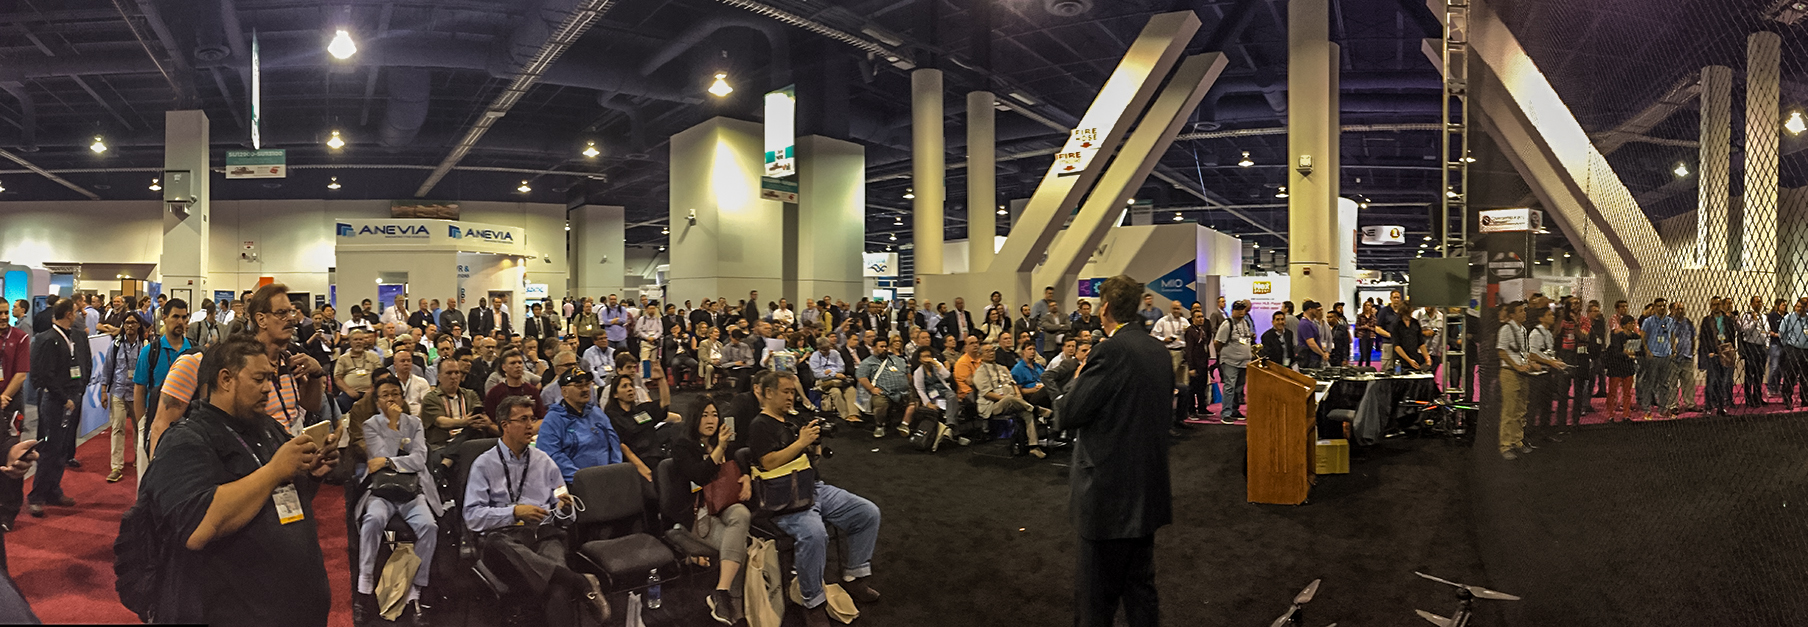 NAB Show Aerial Robotics & Drone Pavilion demos draw huge crowds!